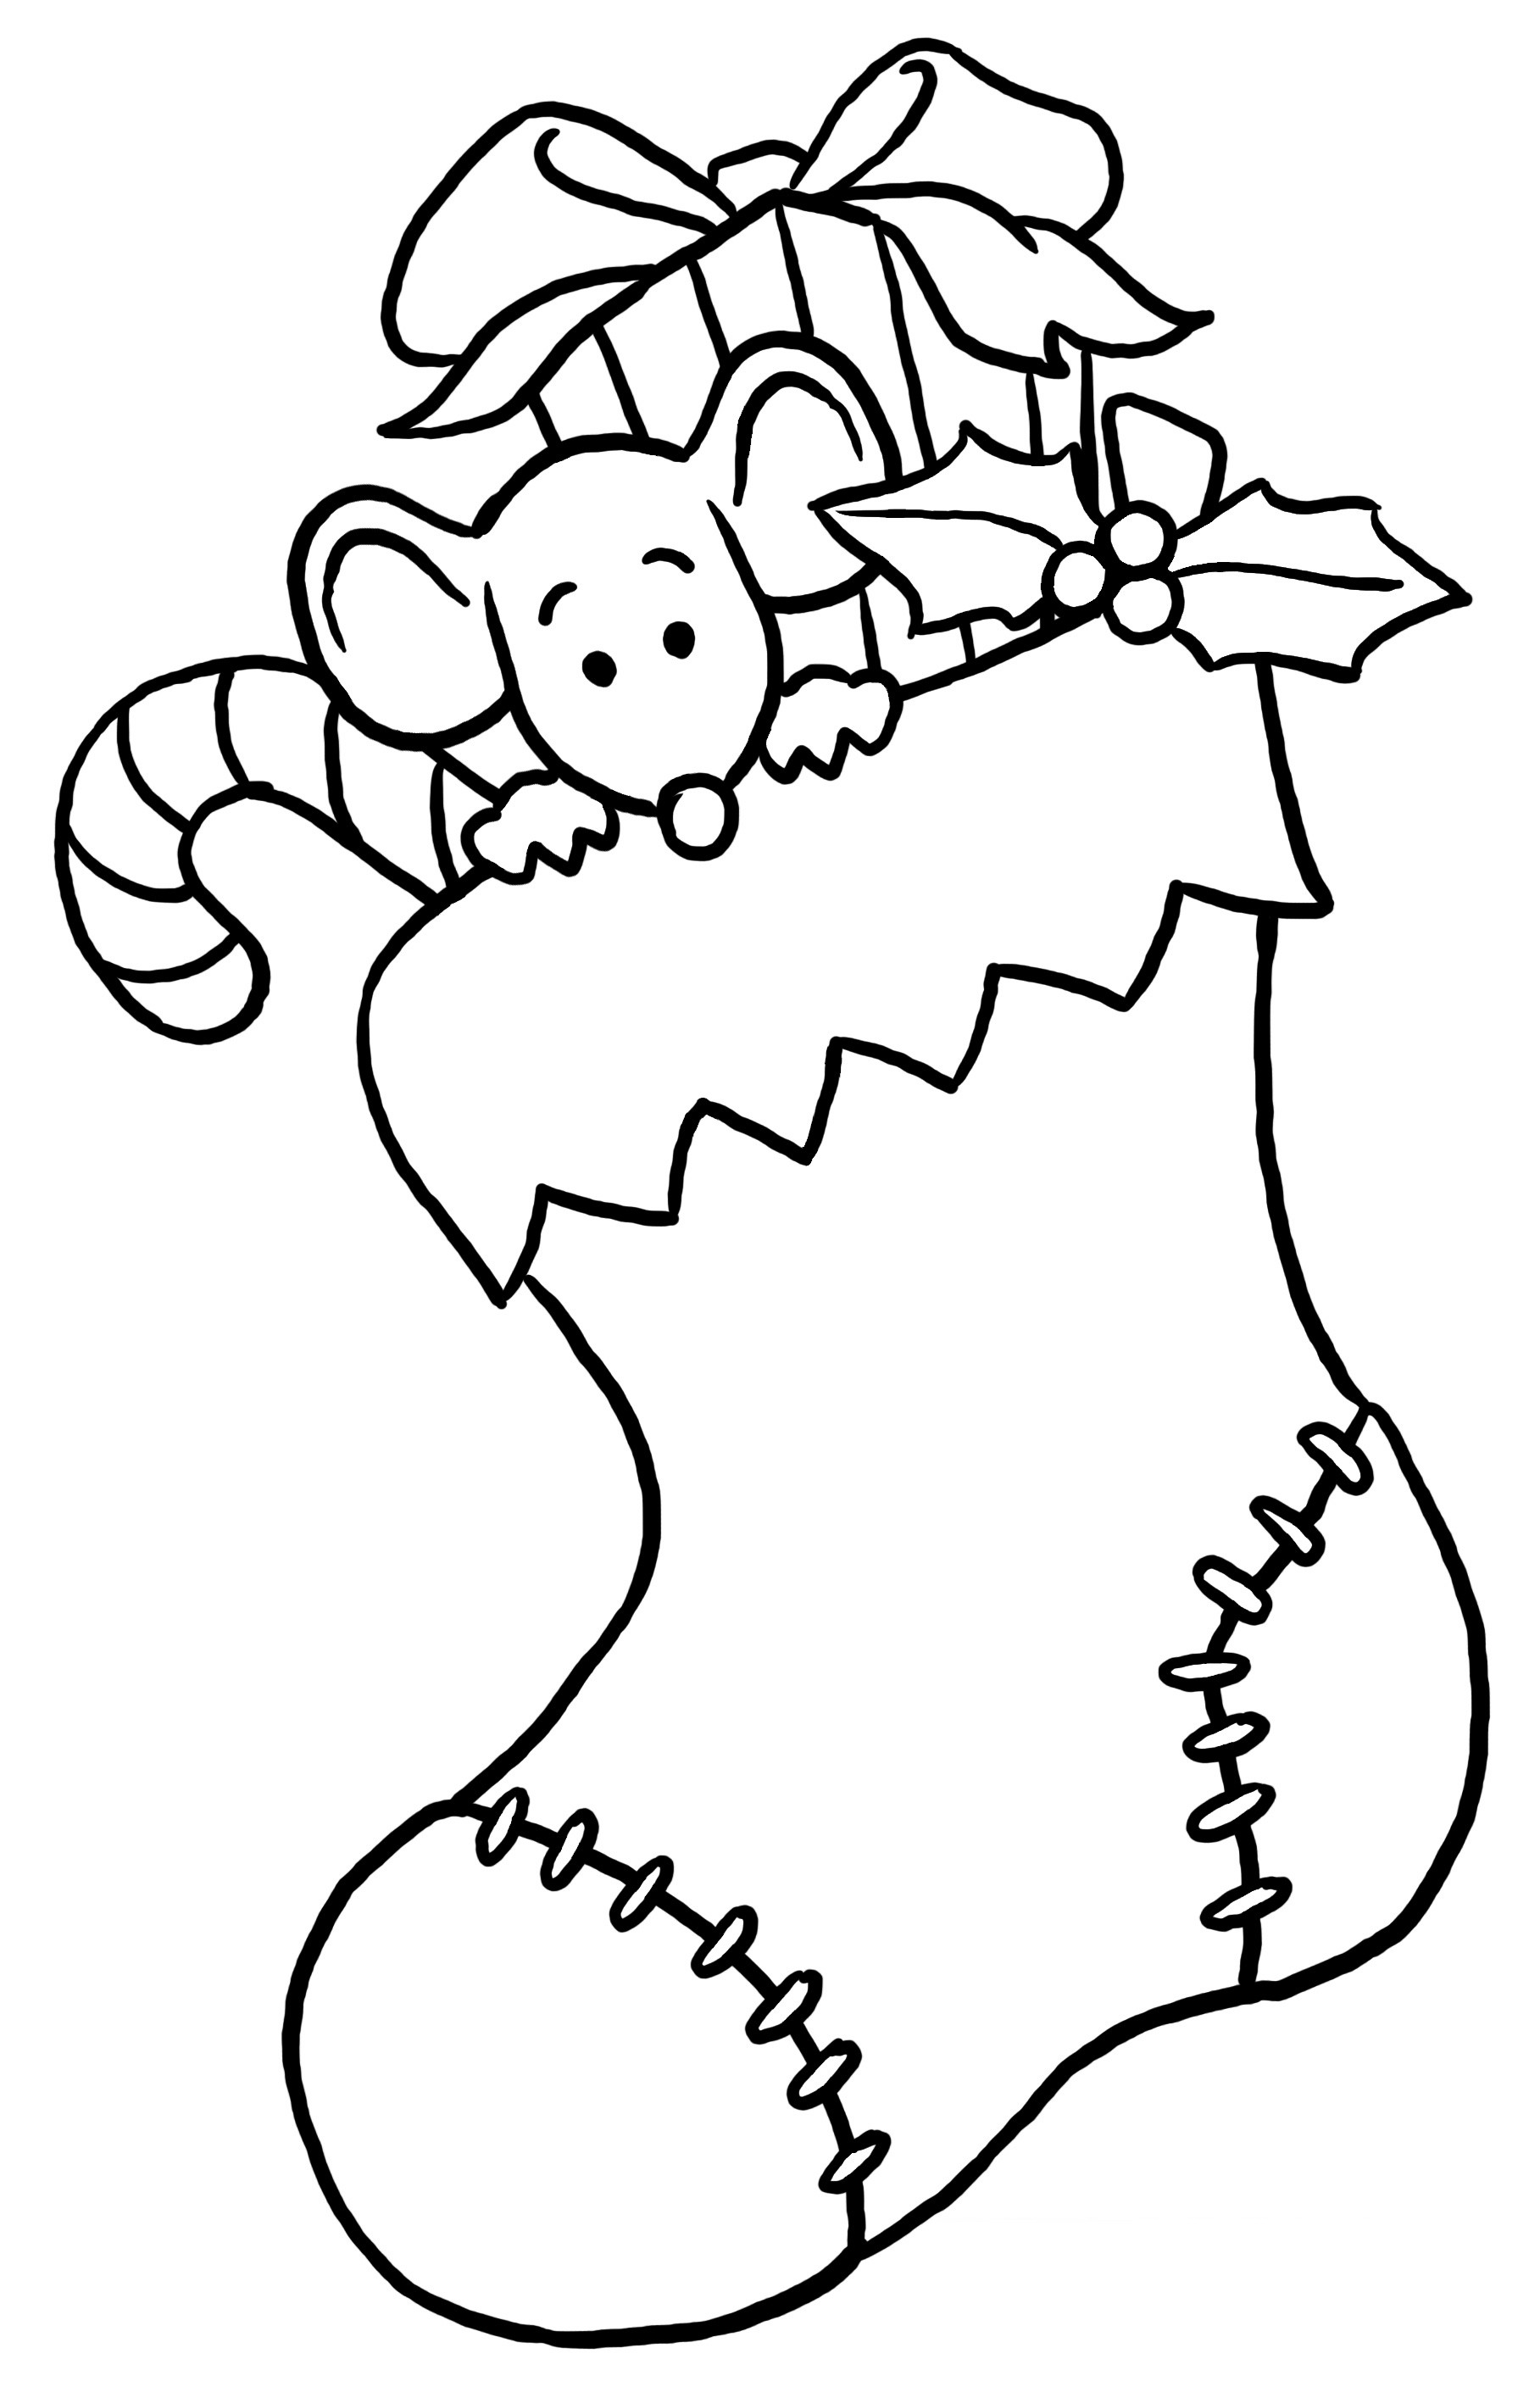 Christmas Coloring Pages For Free Printable With Spongebob Archives Codraw